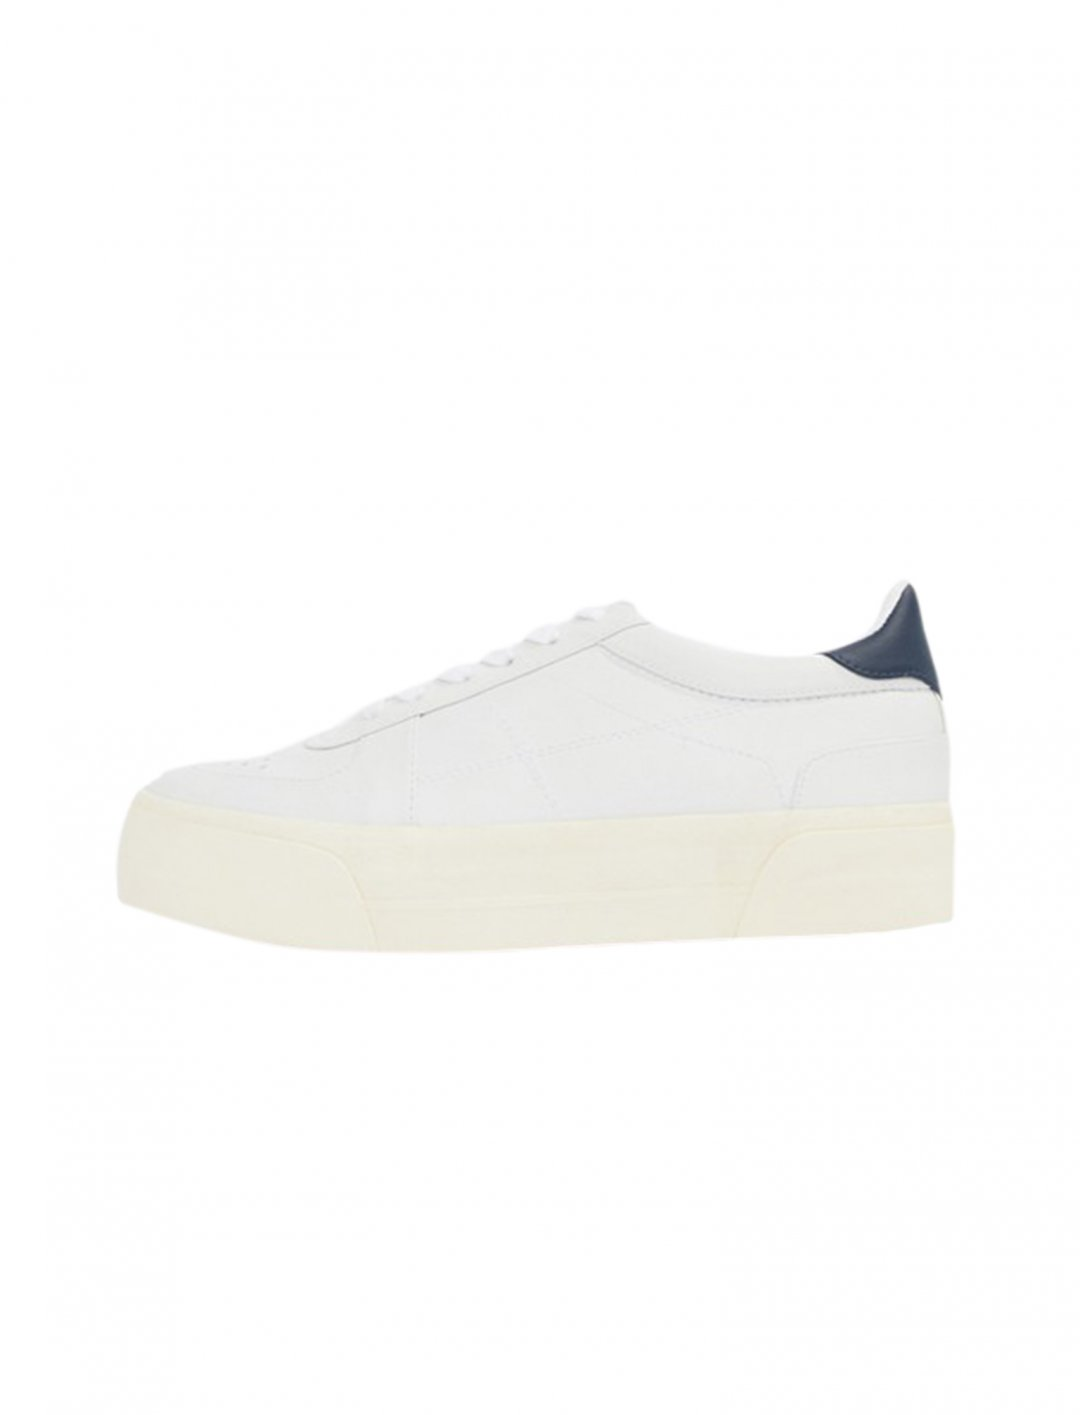 "Asos White Trainers {""id"":5,""product_section_id"":1,""name"":""Clothing"",""order"":5} Asos"